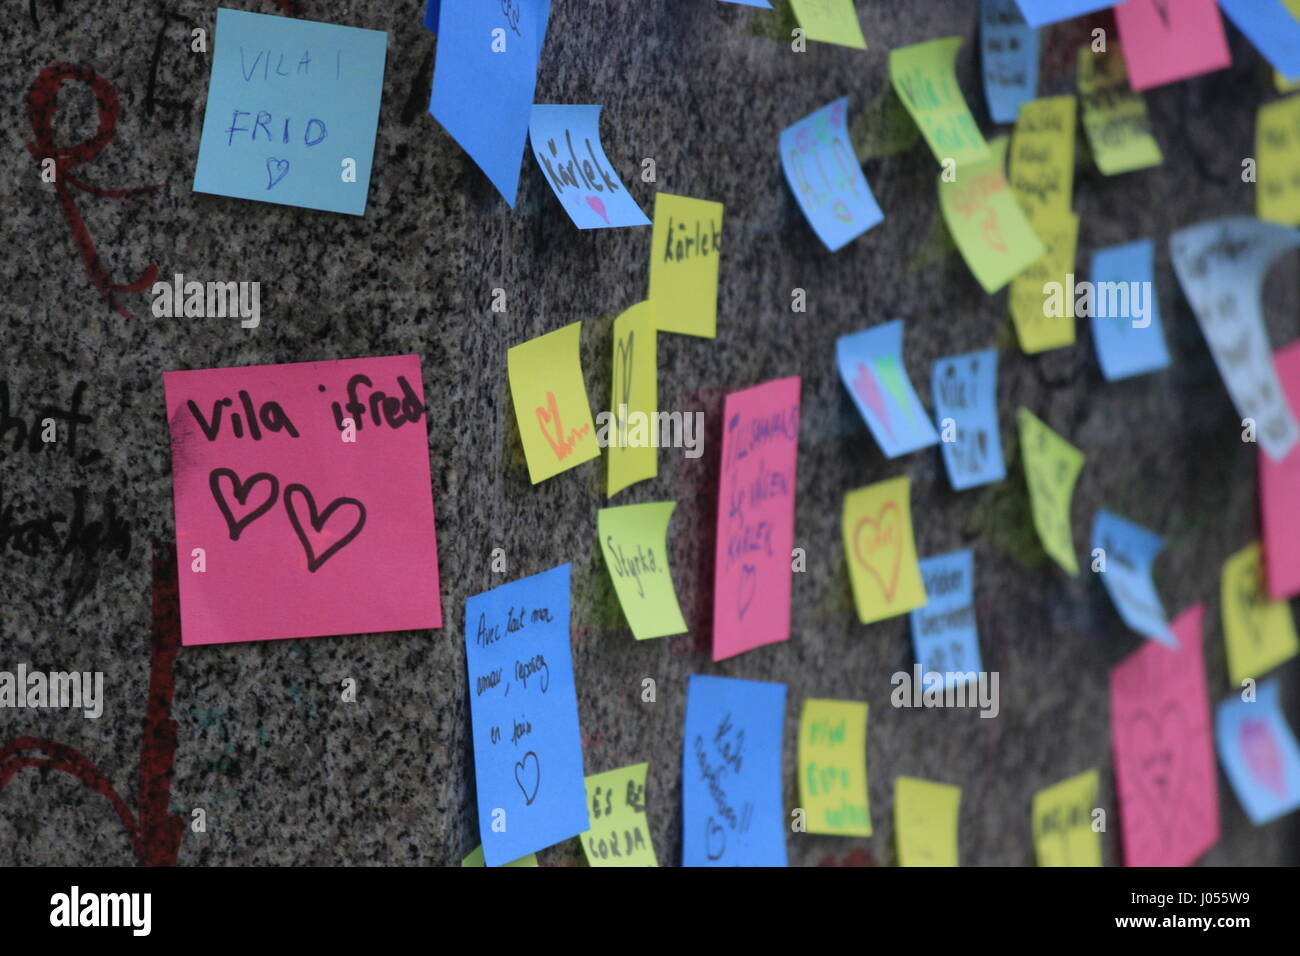 Colourful papers / sticky notes with hand-written condolences and expressive messages such as 'Rest in Peace' - Stock Image